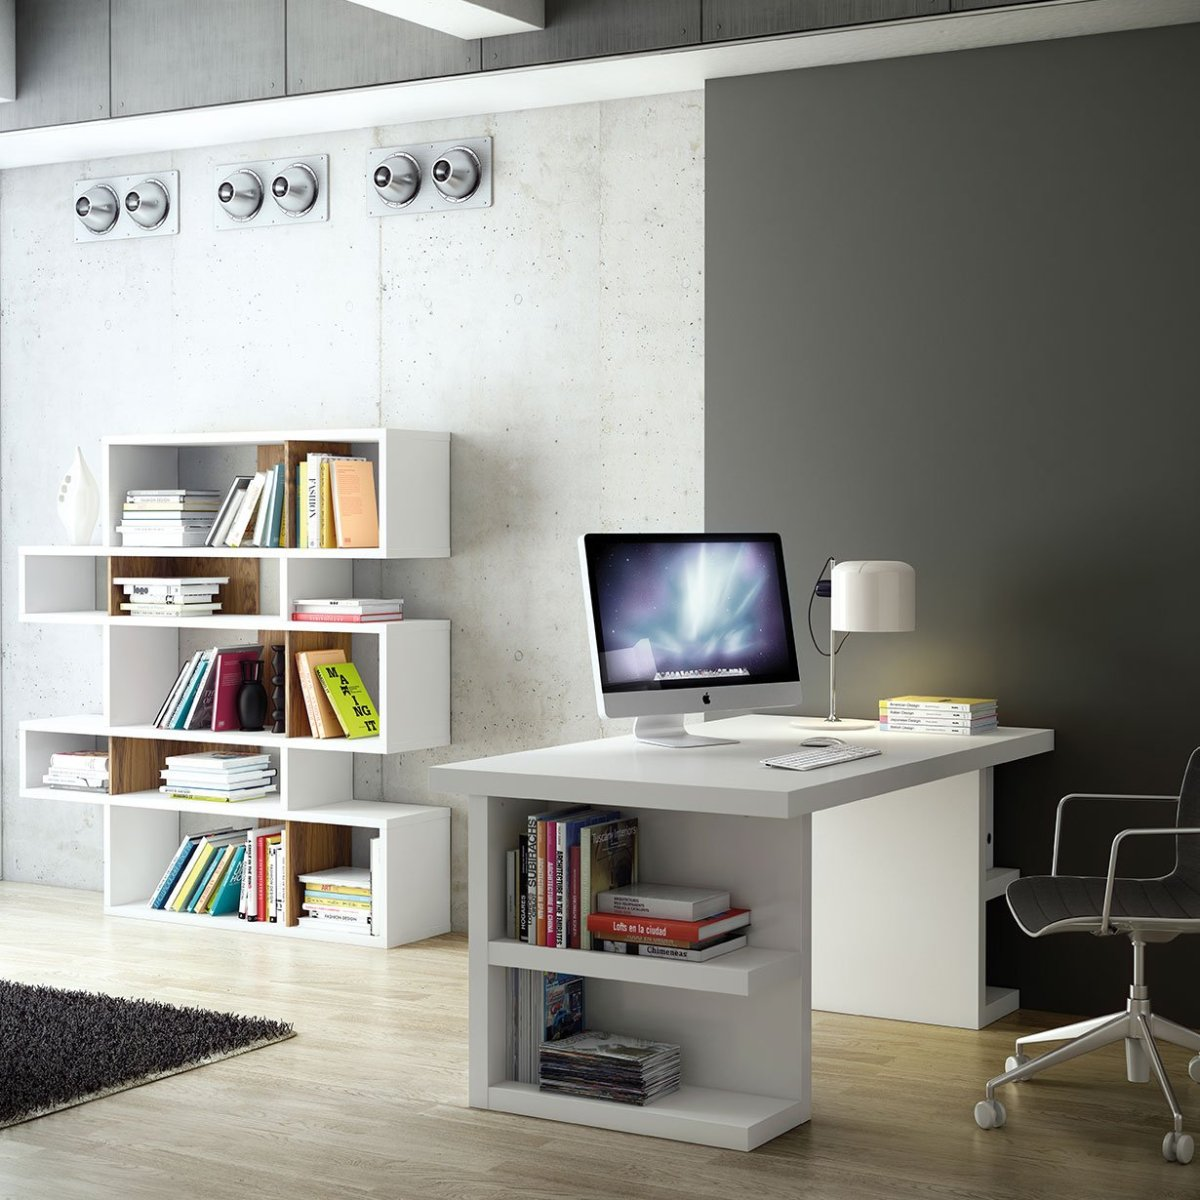 contemporary corner bookcase for space also designs 1